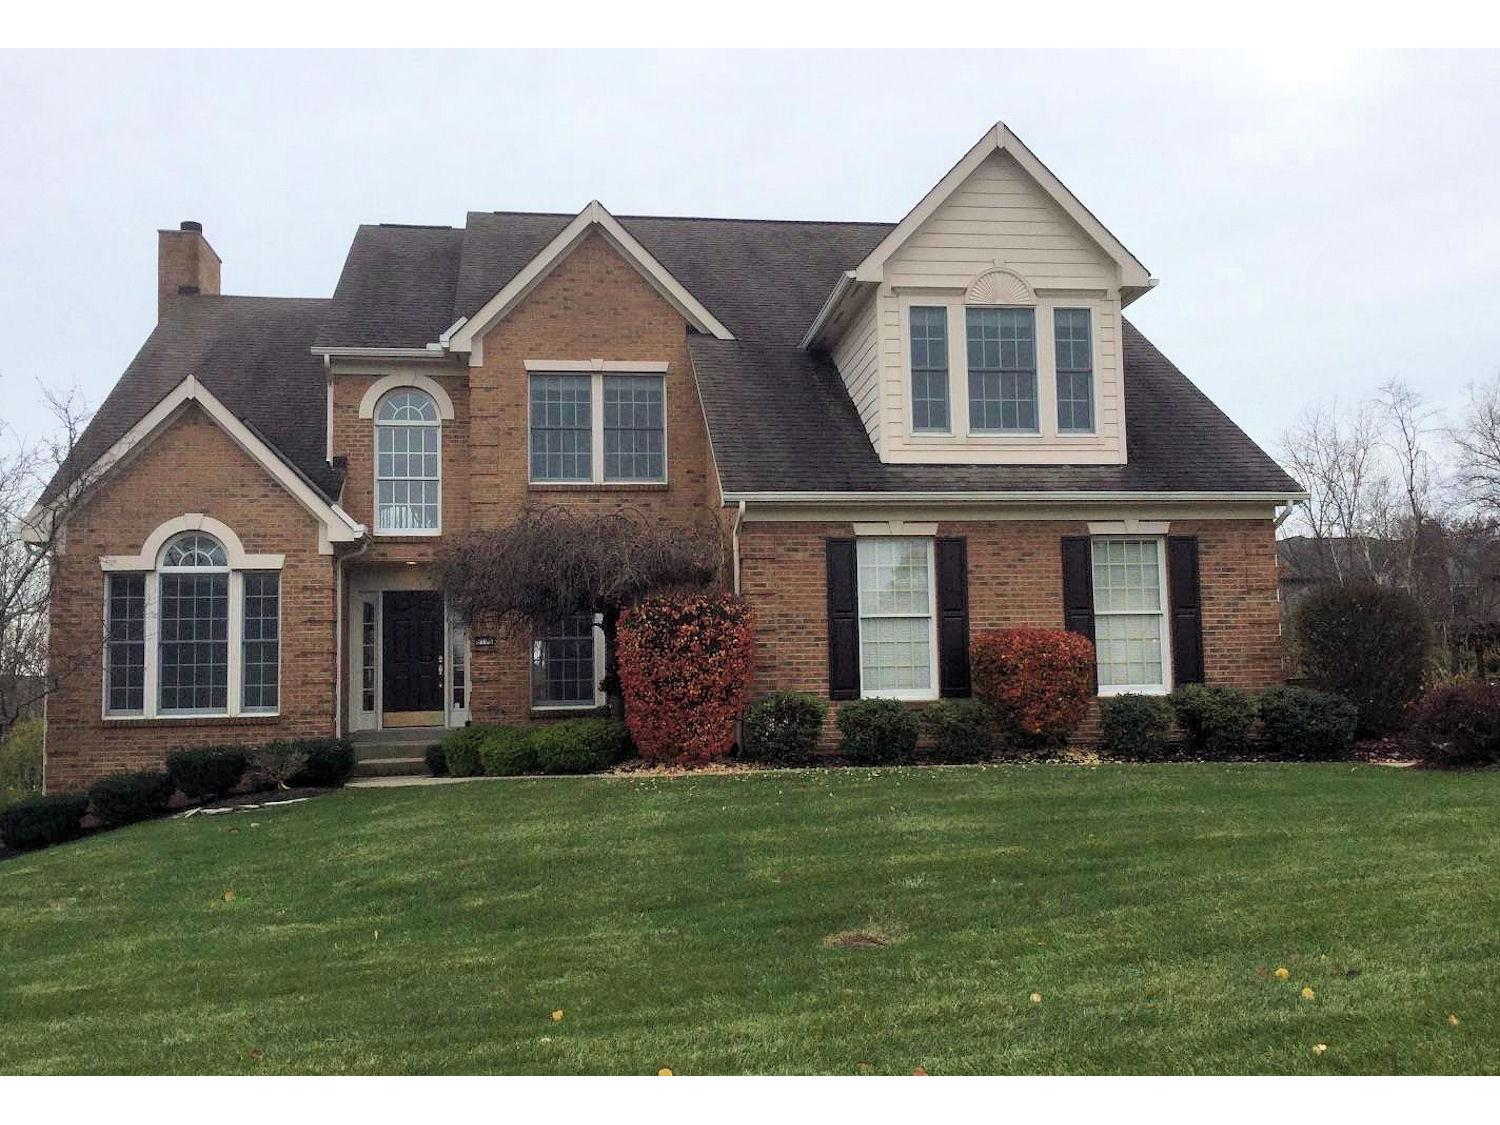 6175 Chappellfield Drive, West Chester, OH 45069